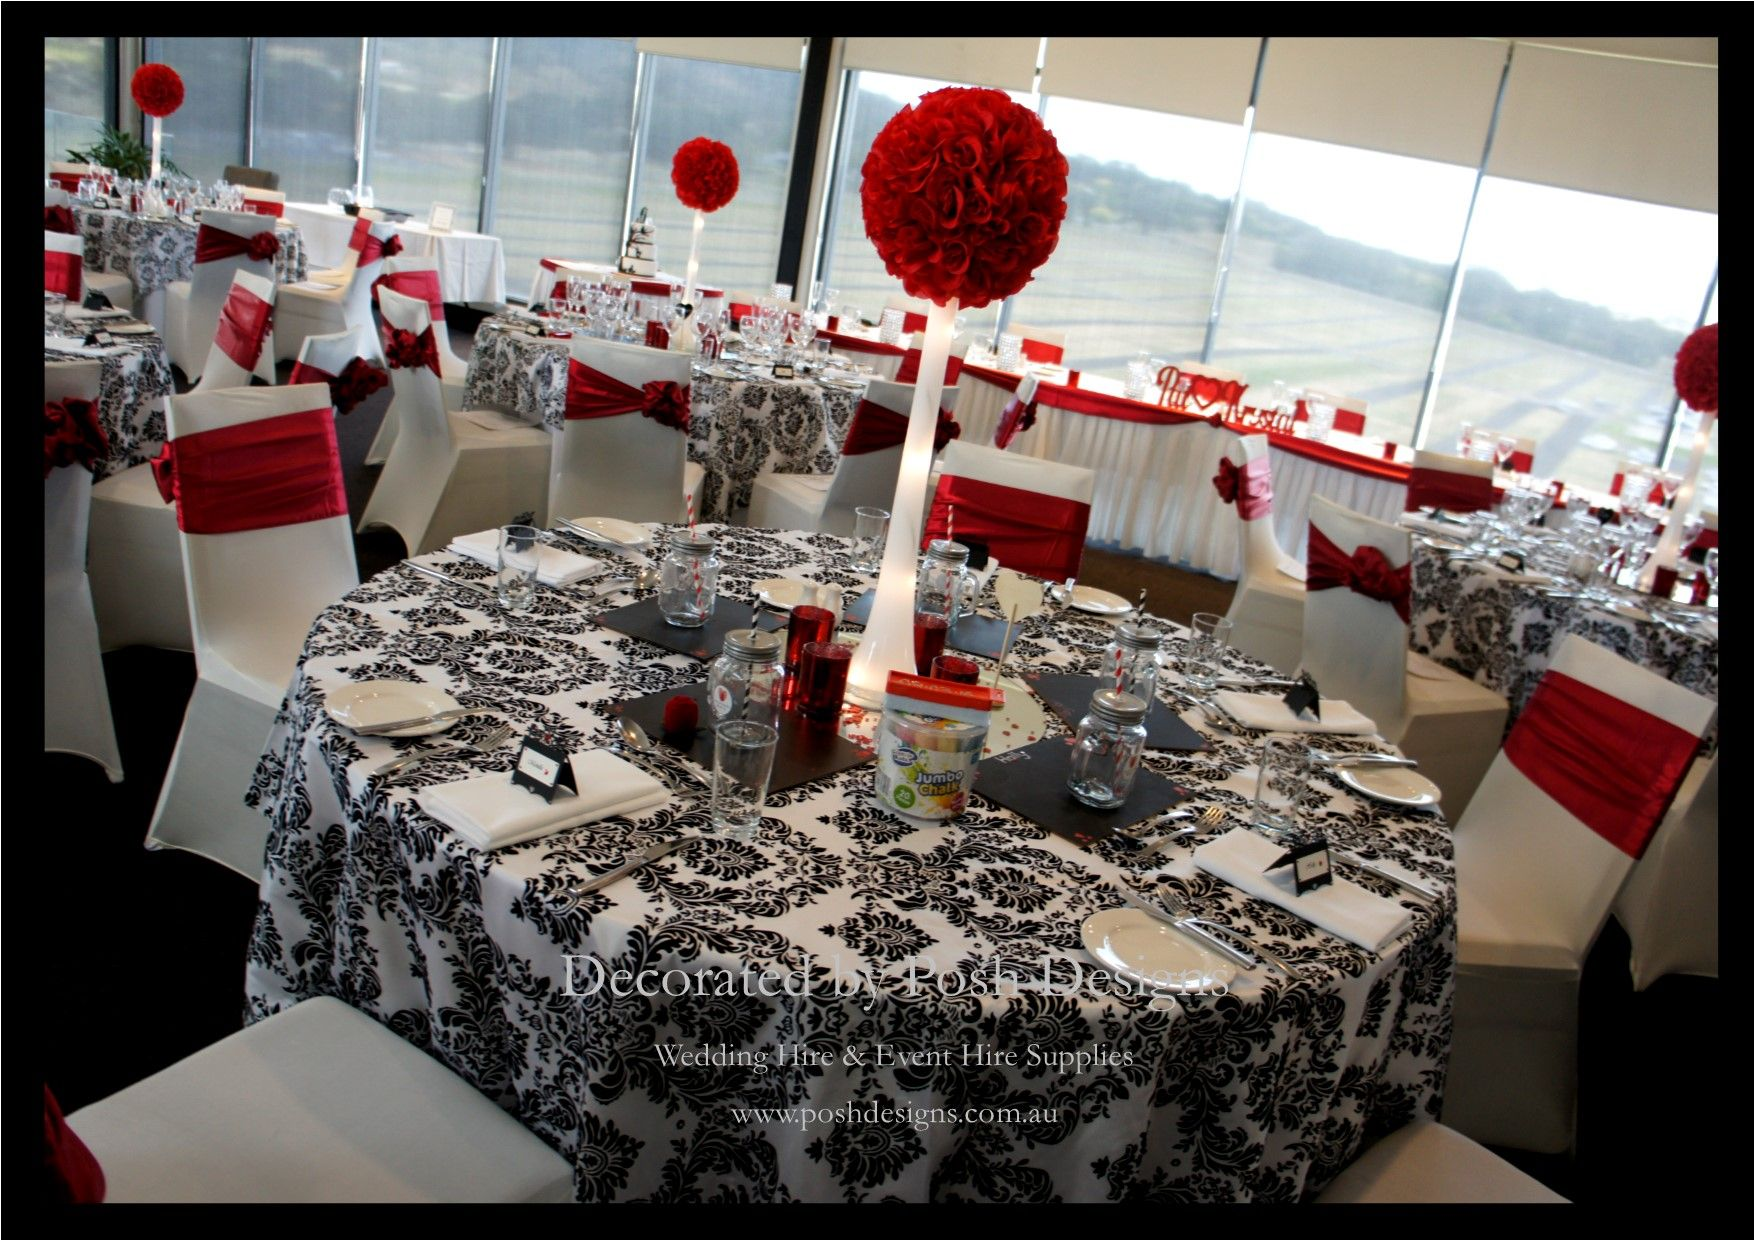 Wedding decorations red  Red white and filigree themed wedding decorations for hire